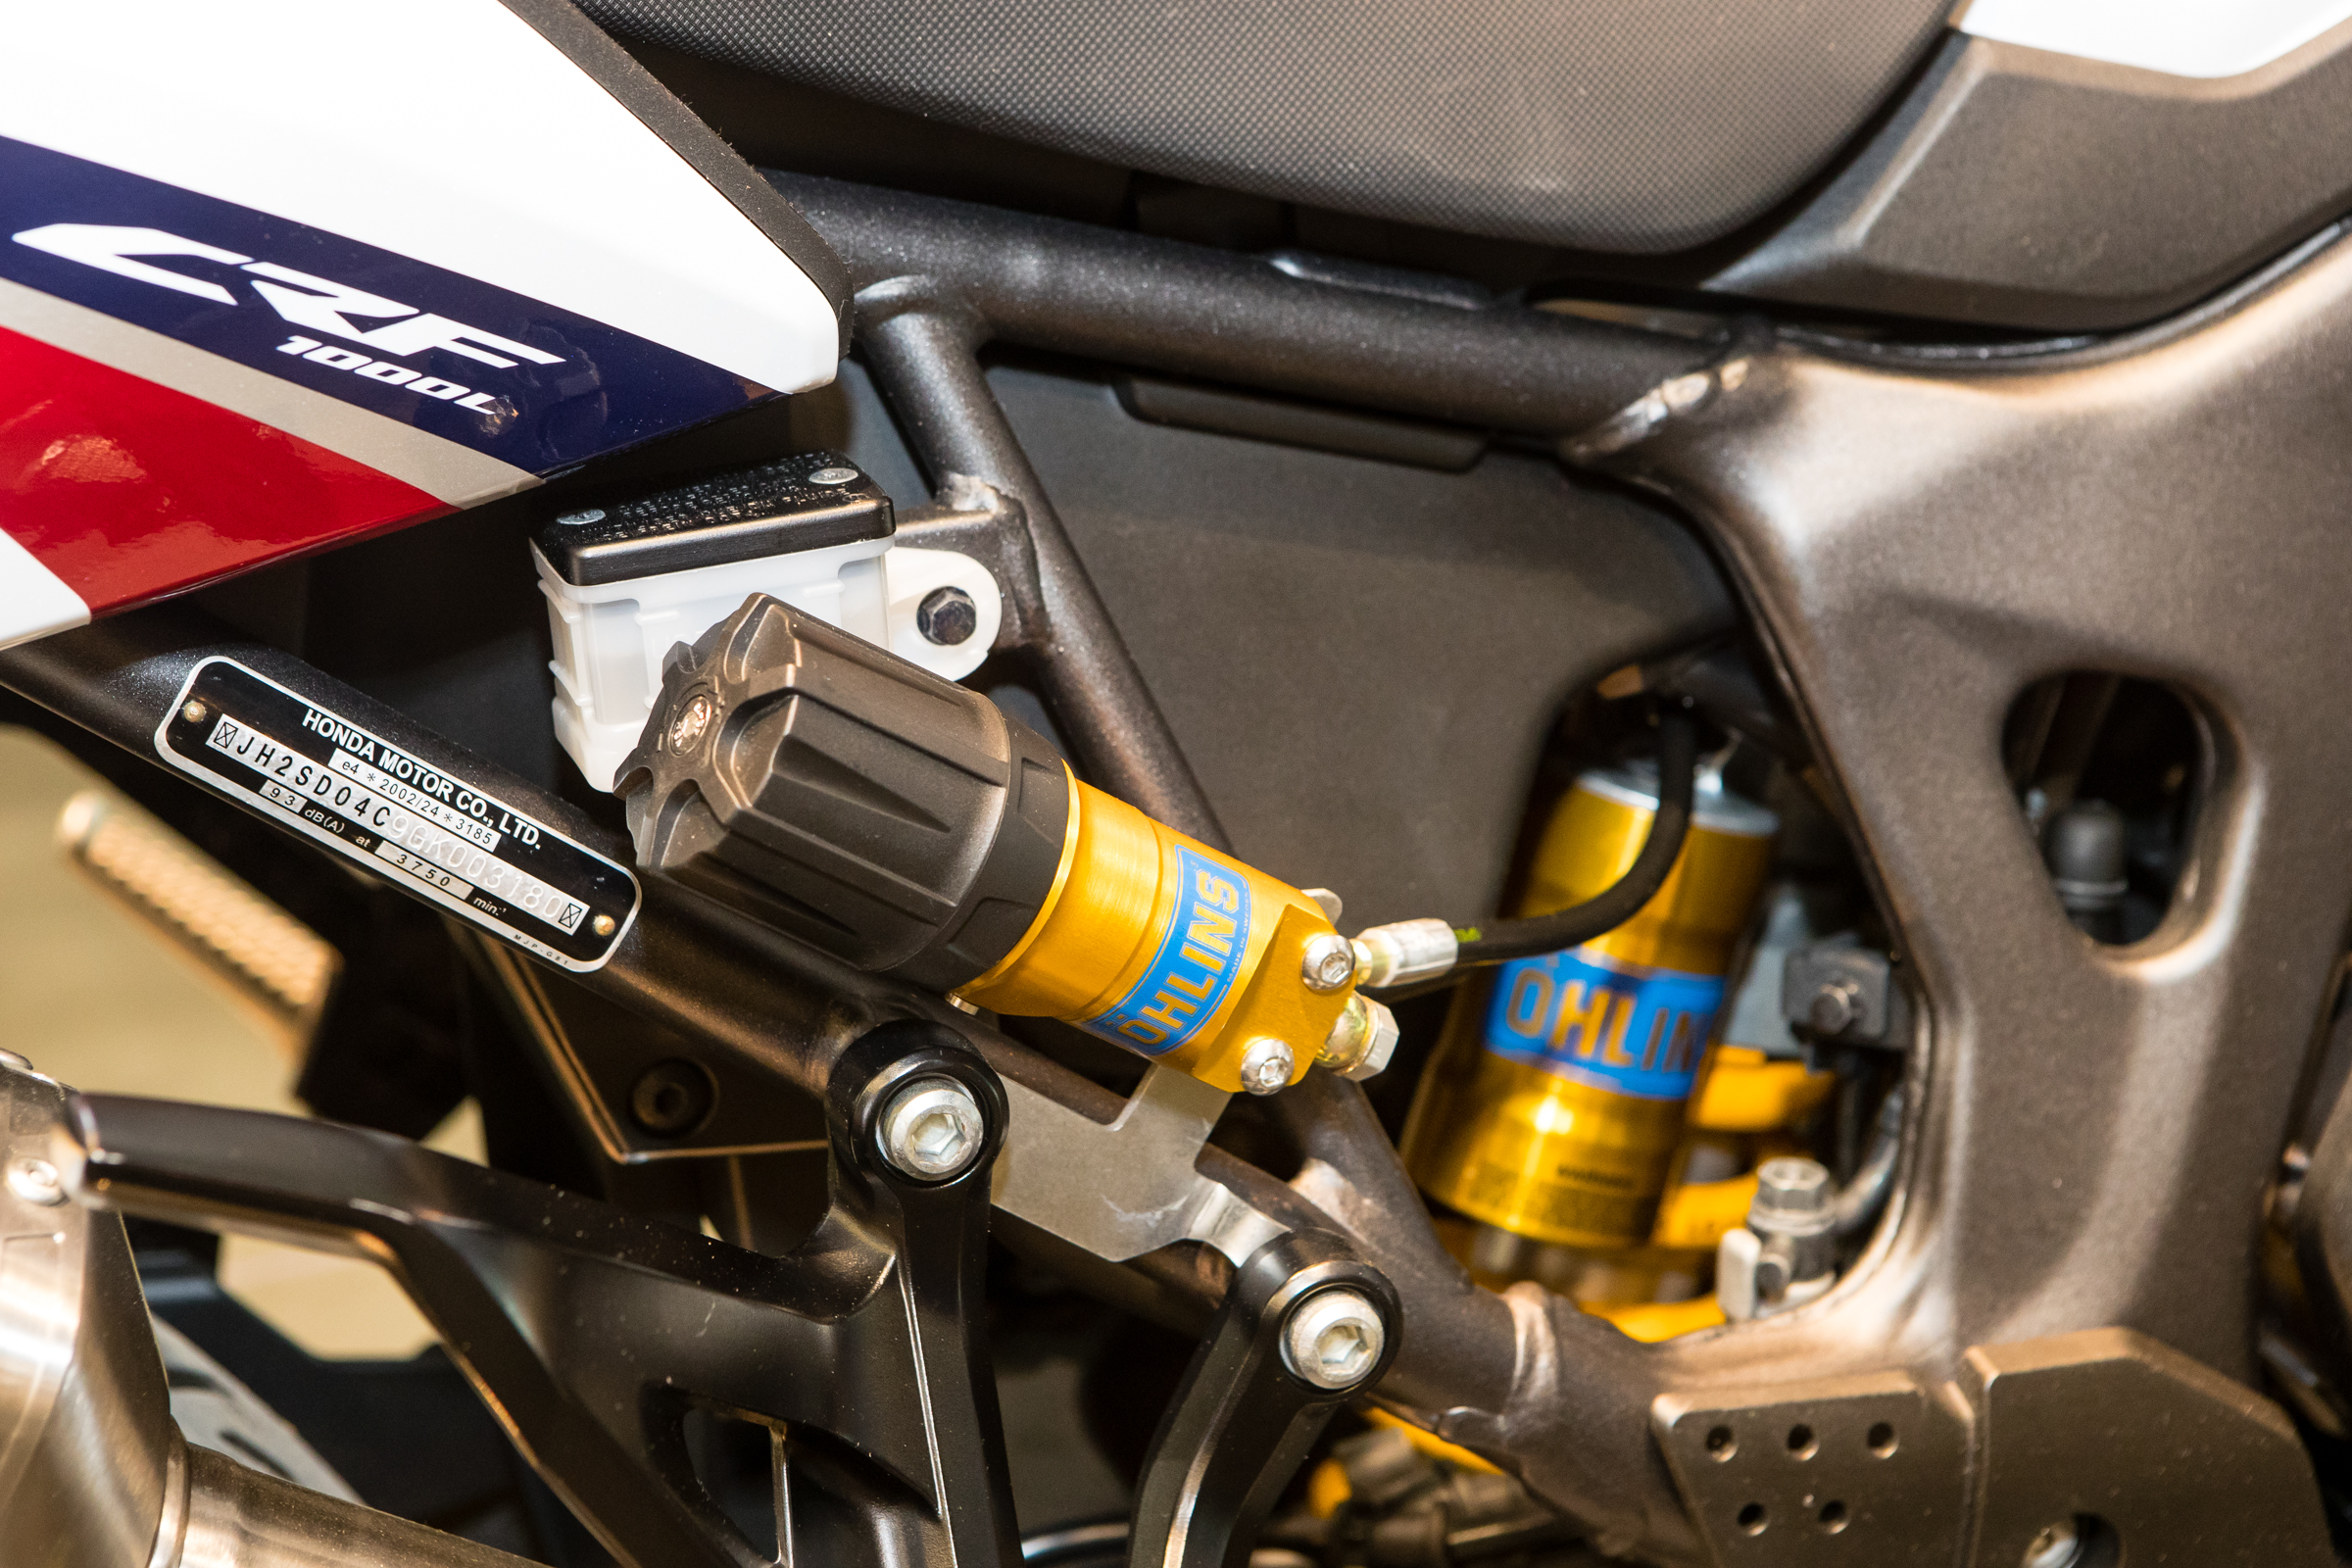 Including a new shock with an easy to adjust preload system, when adding a passenger or saddle bags this makes adjustments quick and simple.